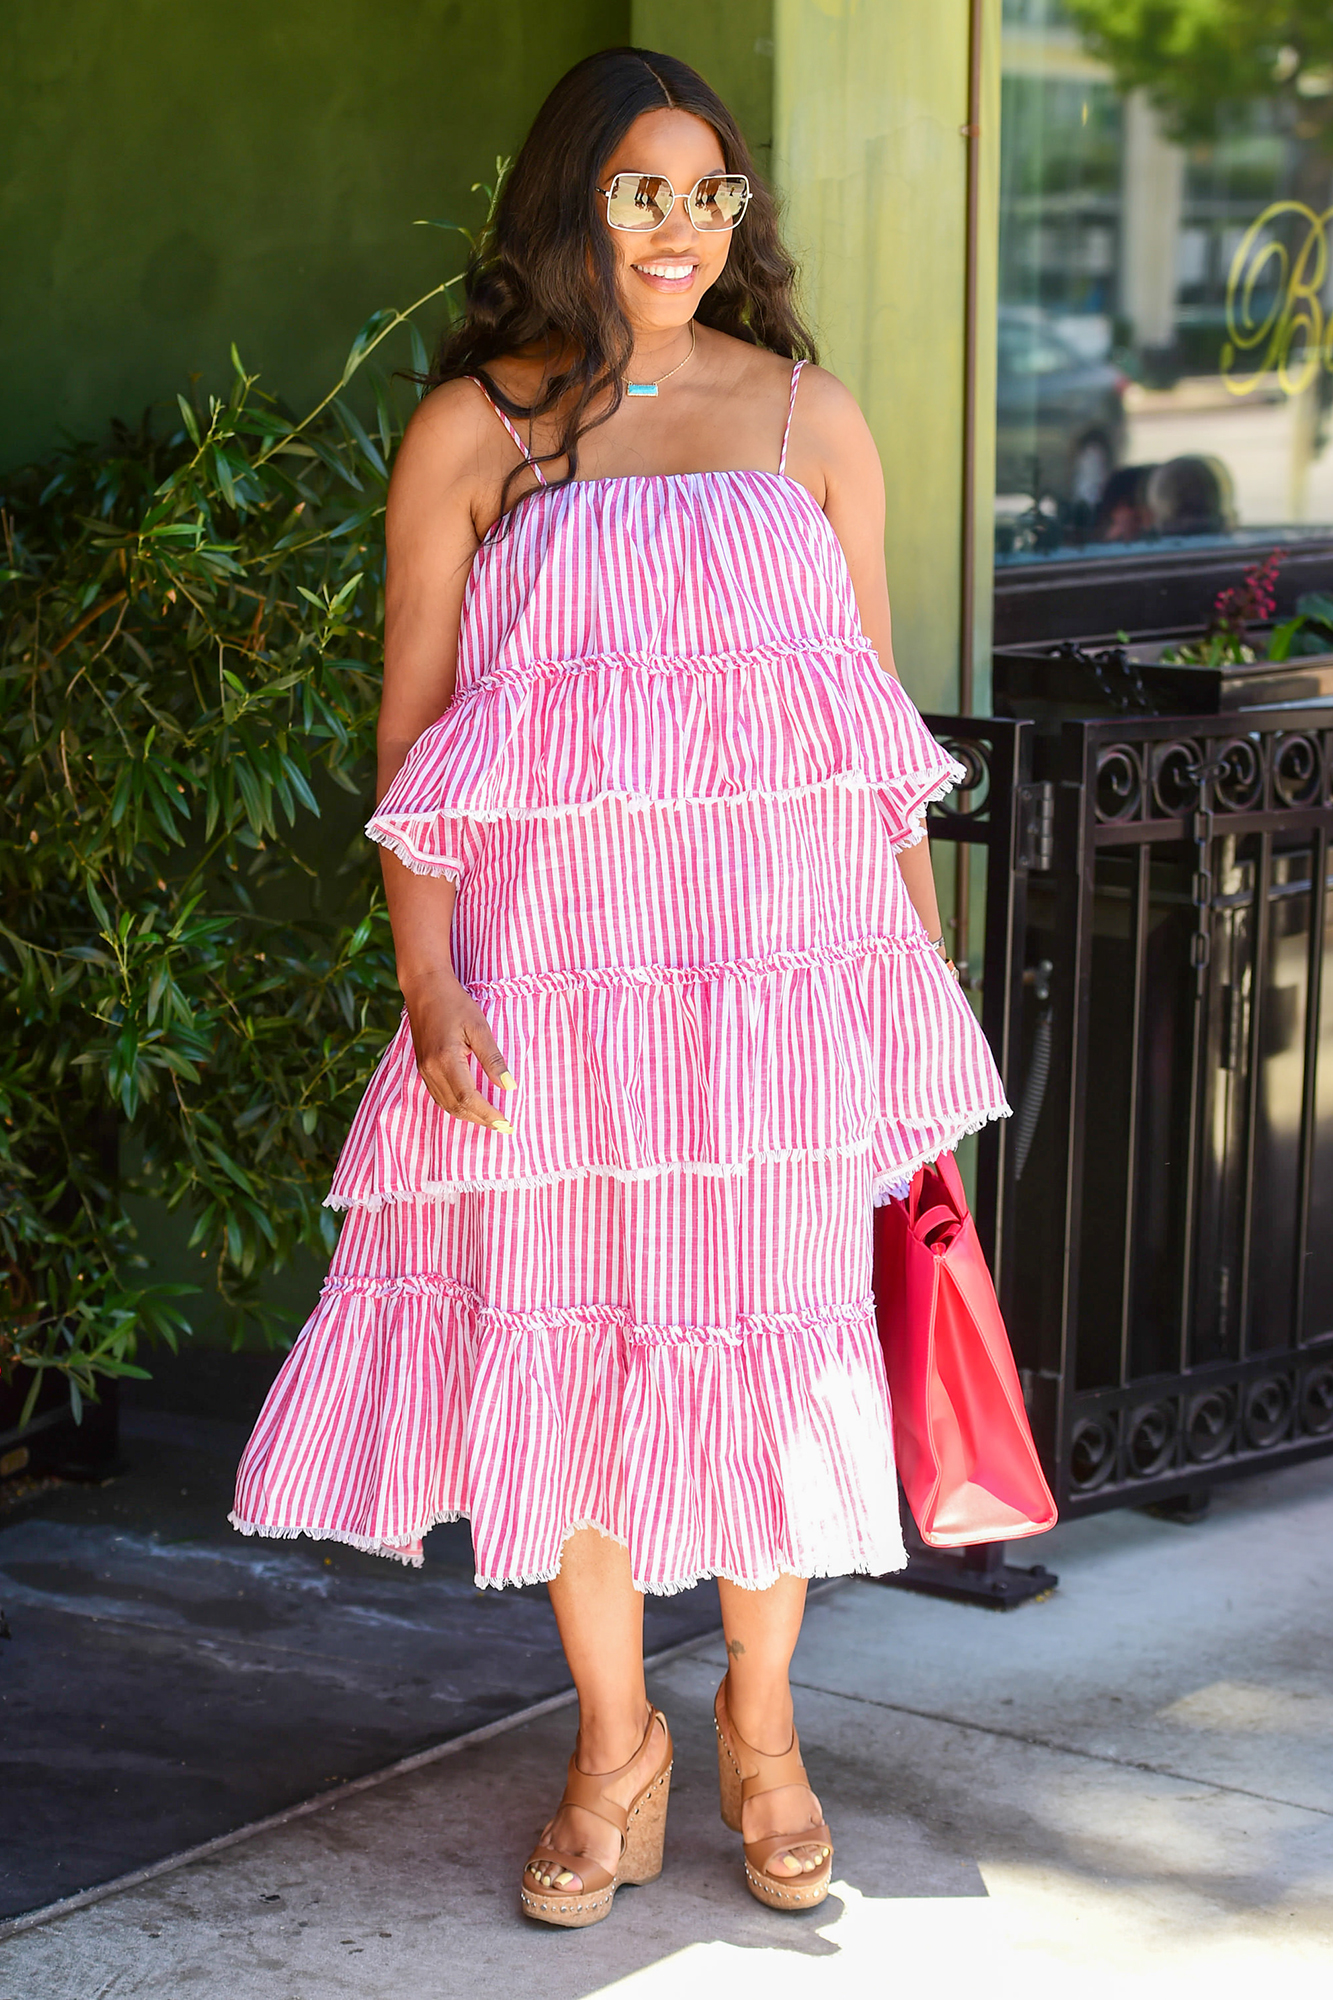 Garcelle Beauvais is seen on July 07, 2021 in Los Angeles, California